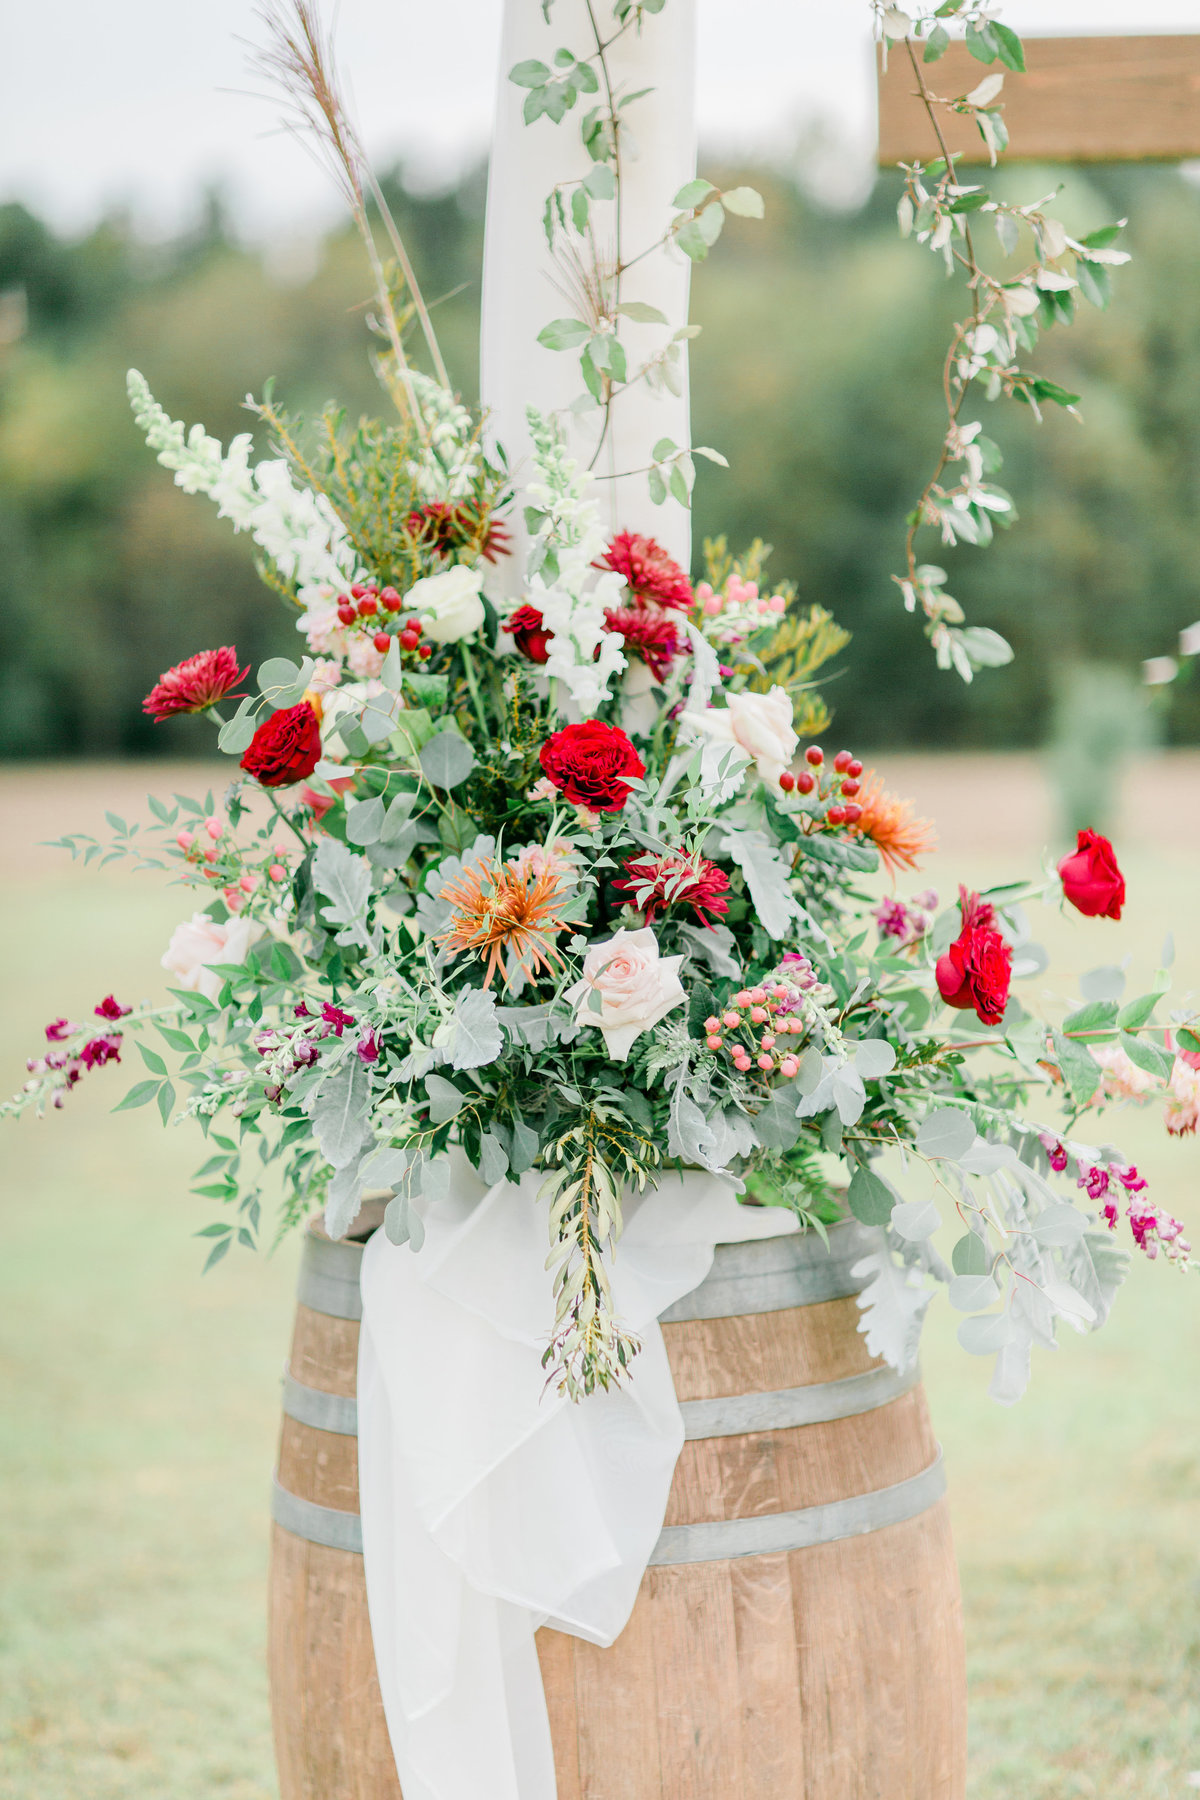 Williamsburg_Winery_Fall_Wedding_Virginia_DC_Photographer_Angelika_Johns_Photography-0523